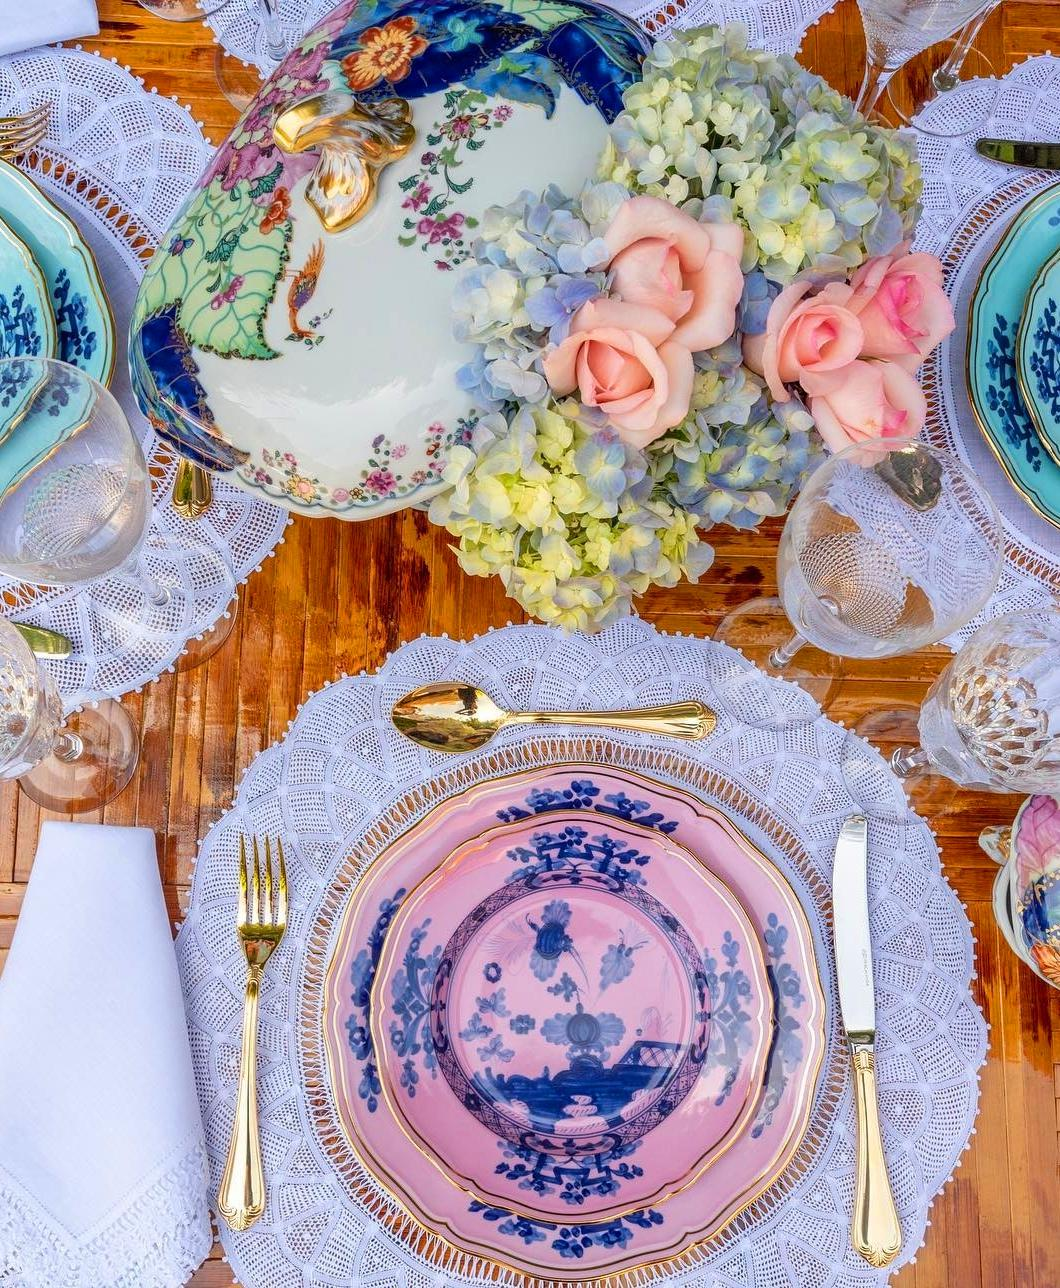 Summer Table Decorations; Summer Decor Dining Room Decor; Bright Color Table Decorations; Romantic Home Decorations; Lemon Table Decorations Center Pieces #roomdecor